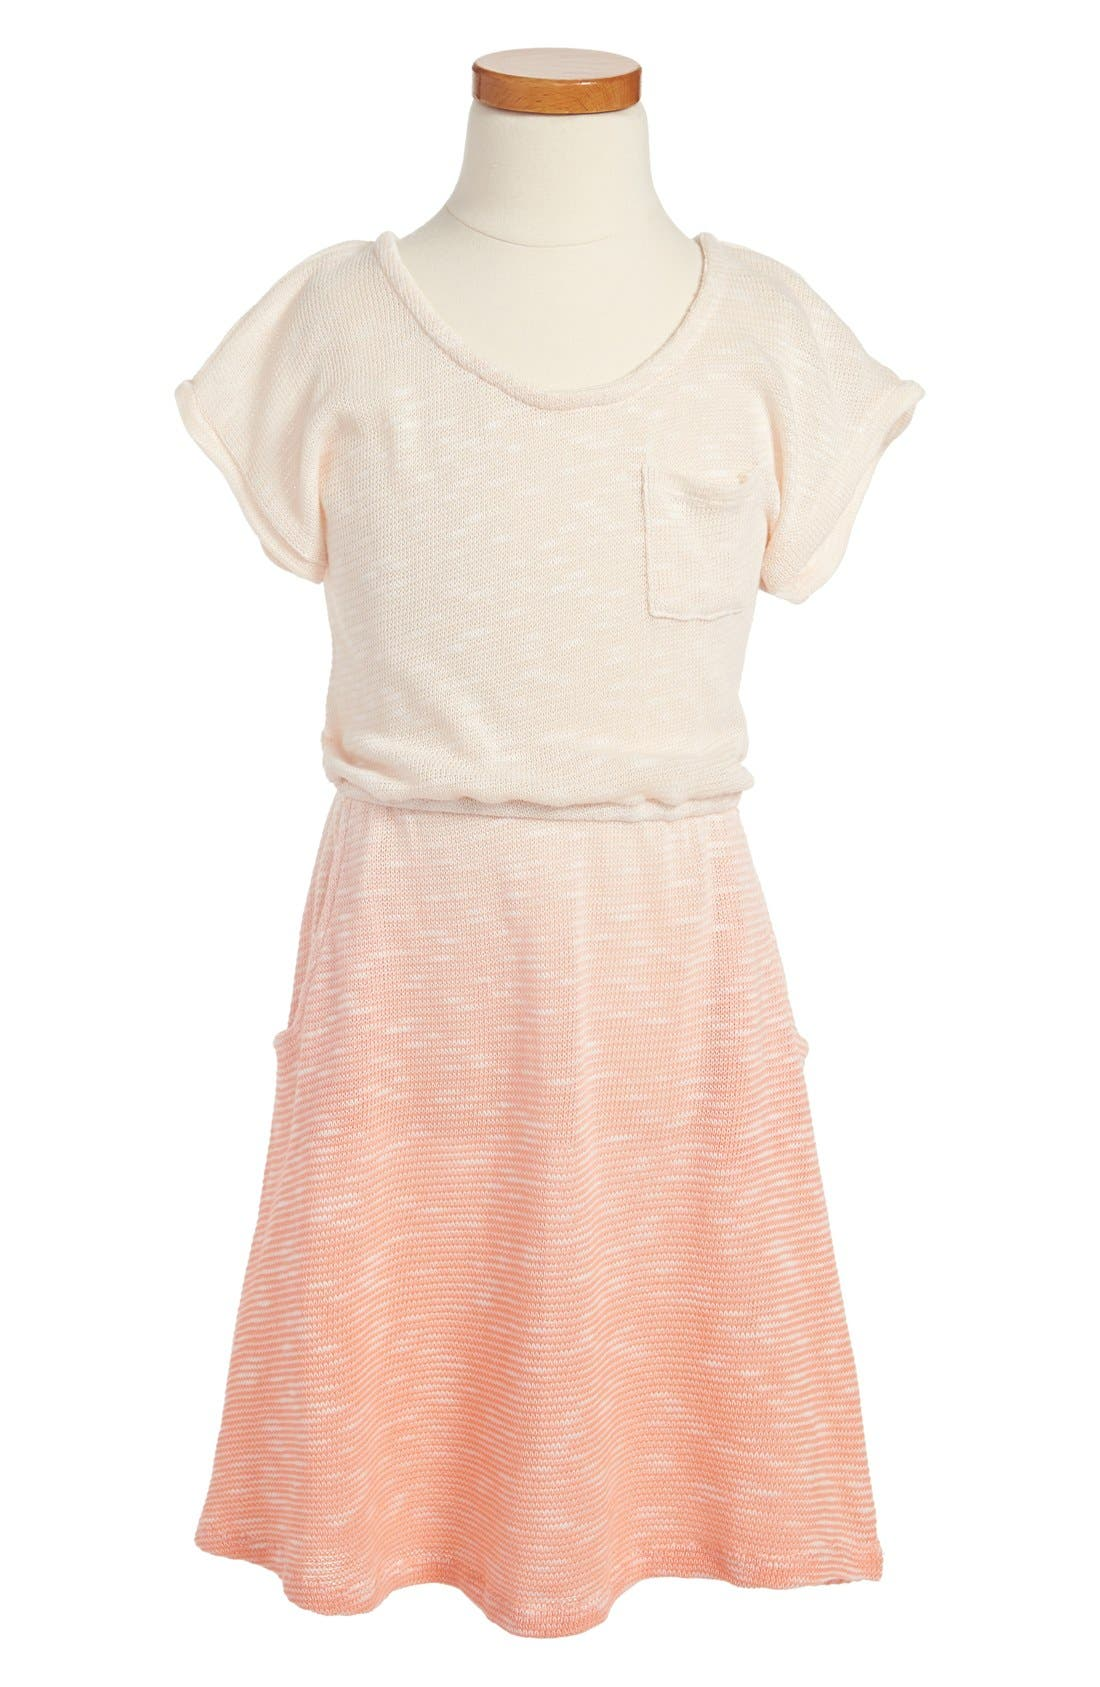 Alternate Image 1 Selected - Roxy 'Sunny Slope' Short Sleeve Dress (Big Girls)